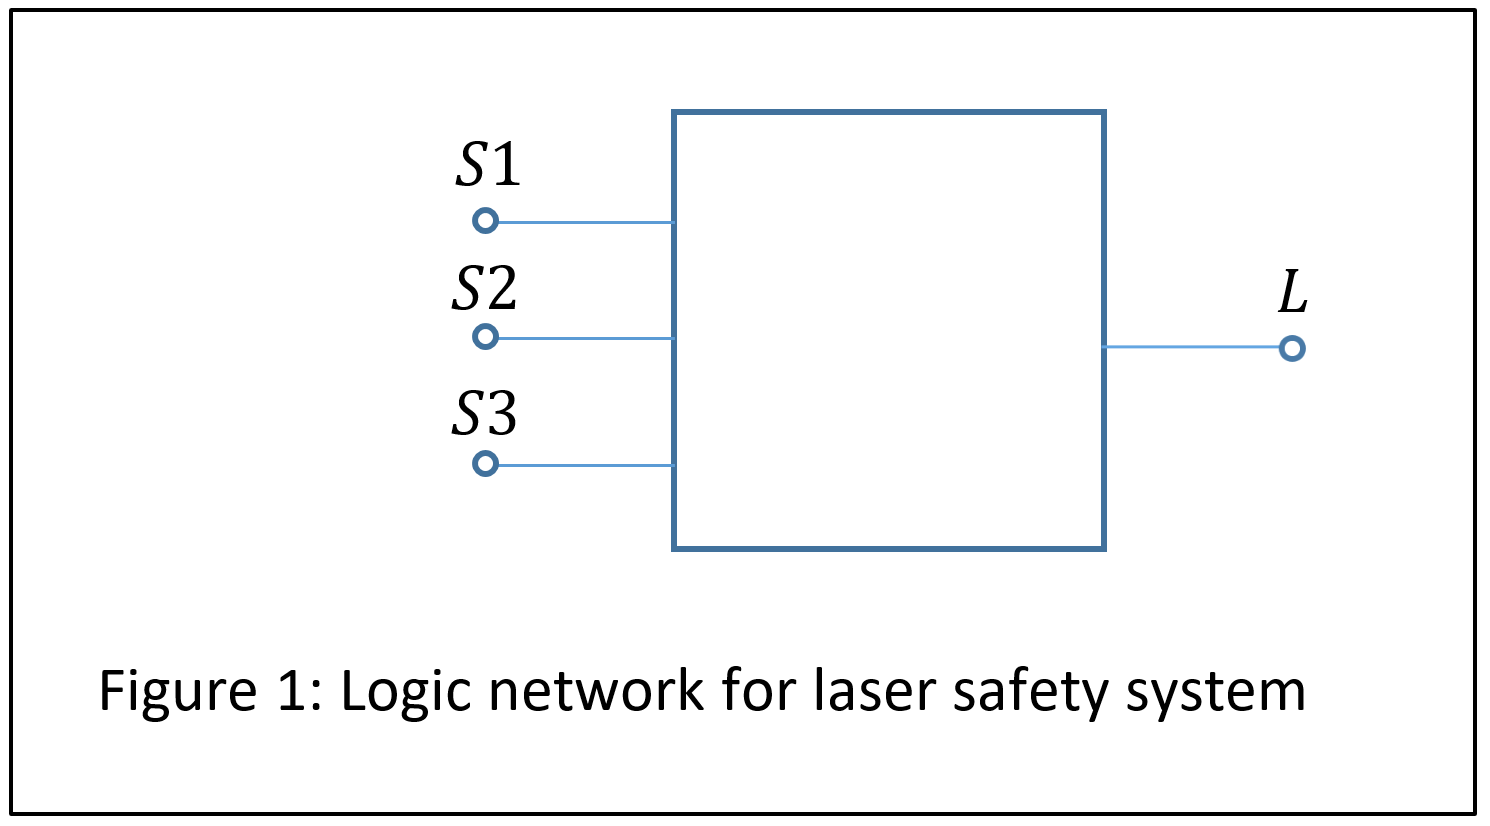 Digital Logic Examples Electrical Engineering Diagram Boolean Expression Figure 1 Network For Laser Safety System Click To Expand